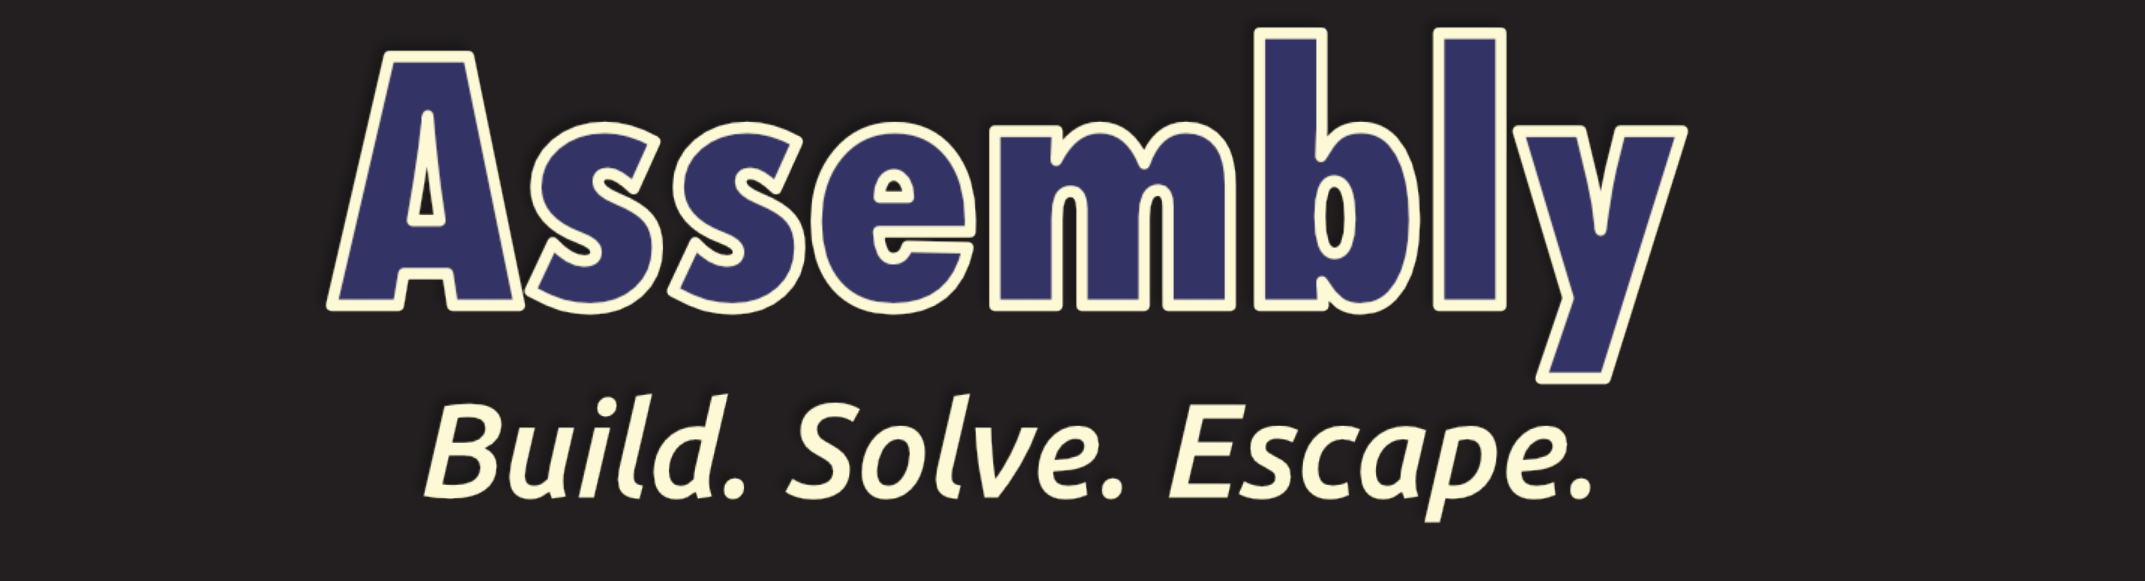 assembly - banner